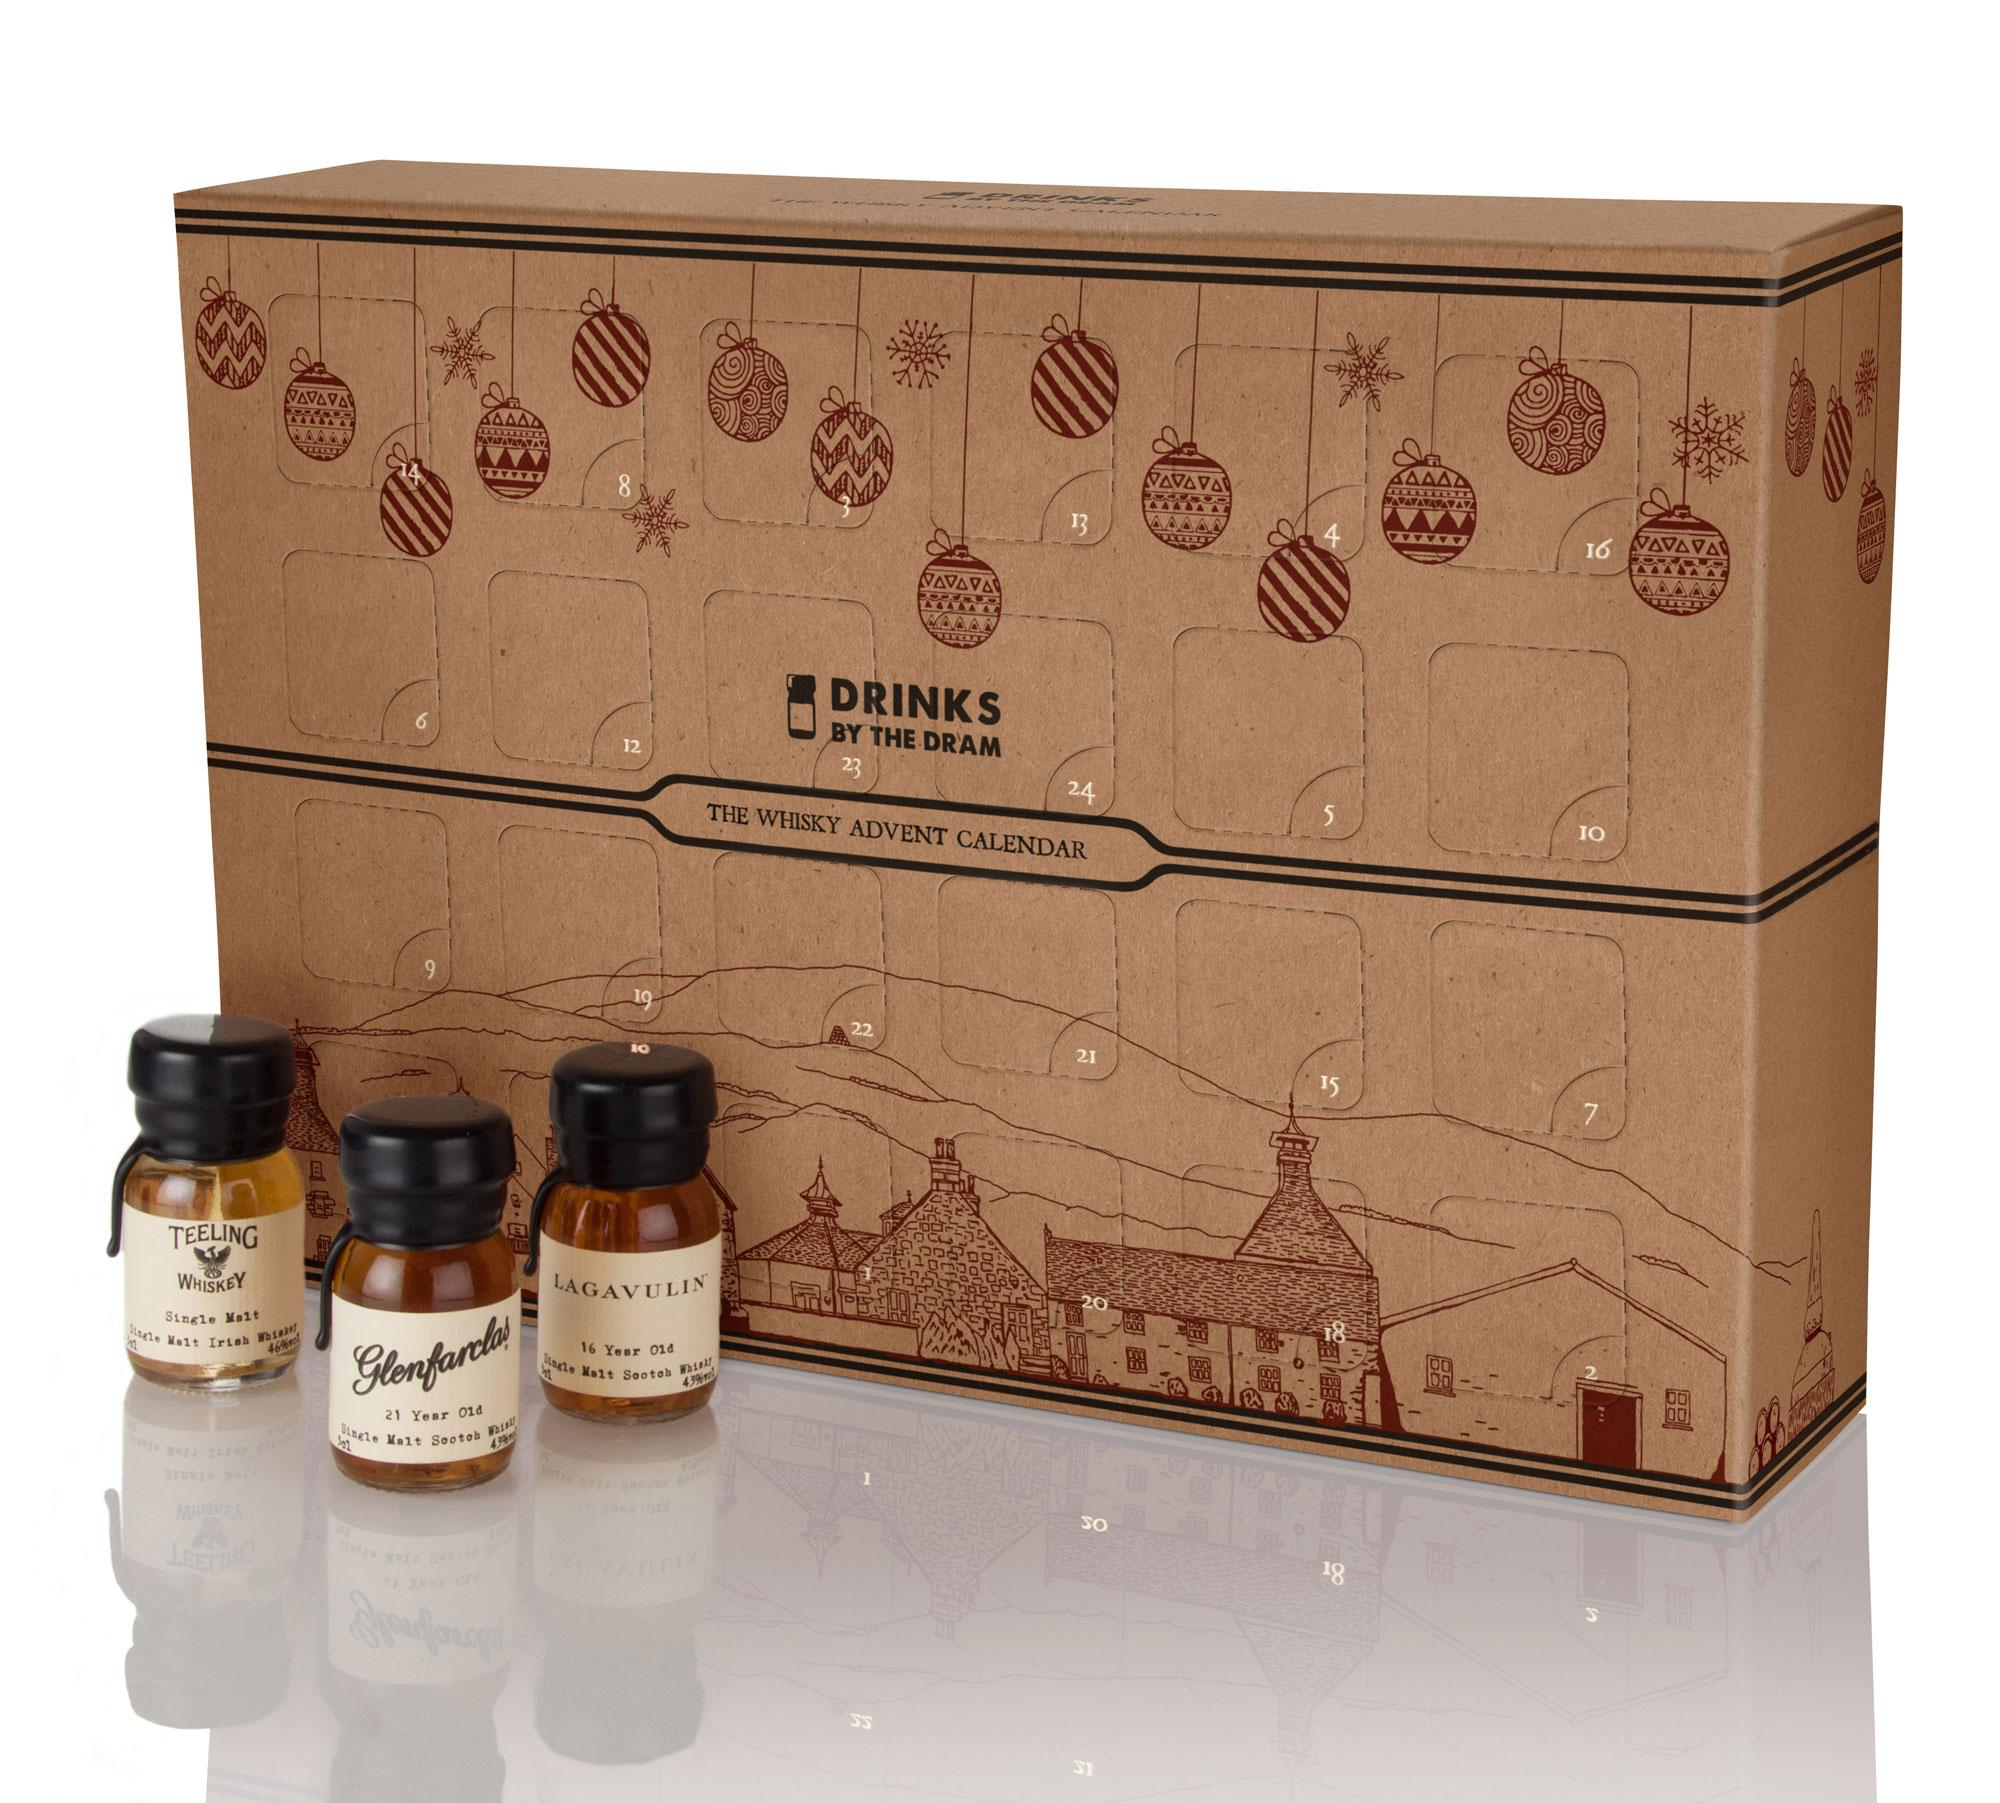 Drinks By The Dram The Whisky Advent Calendar 2016